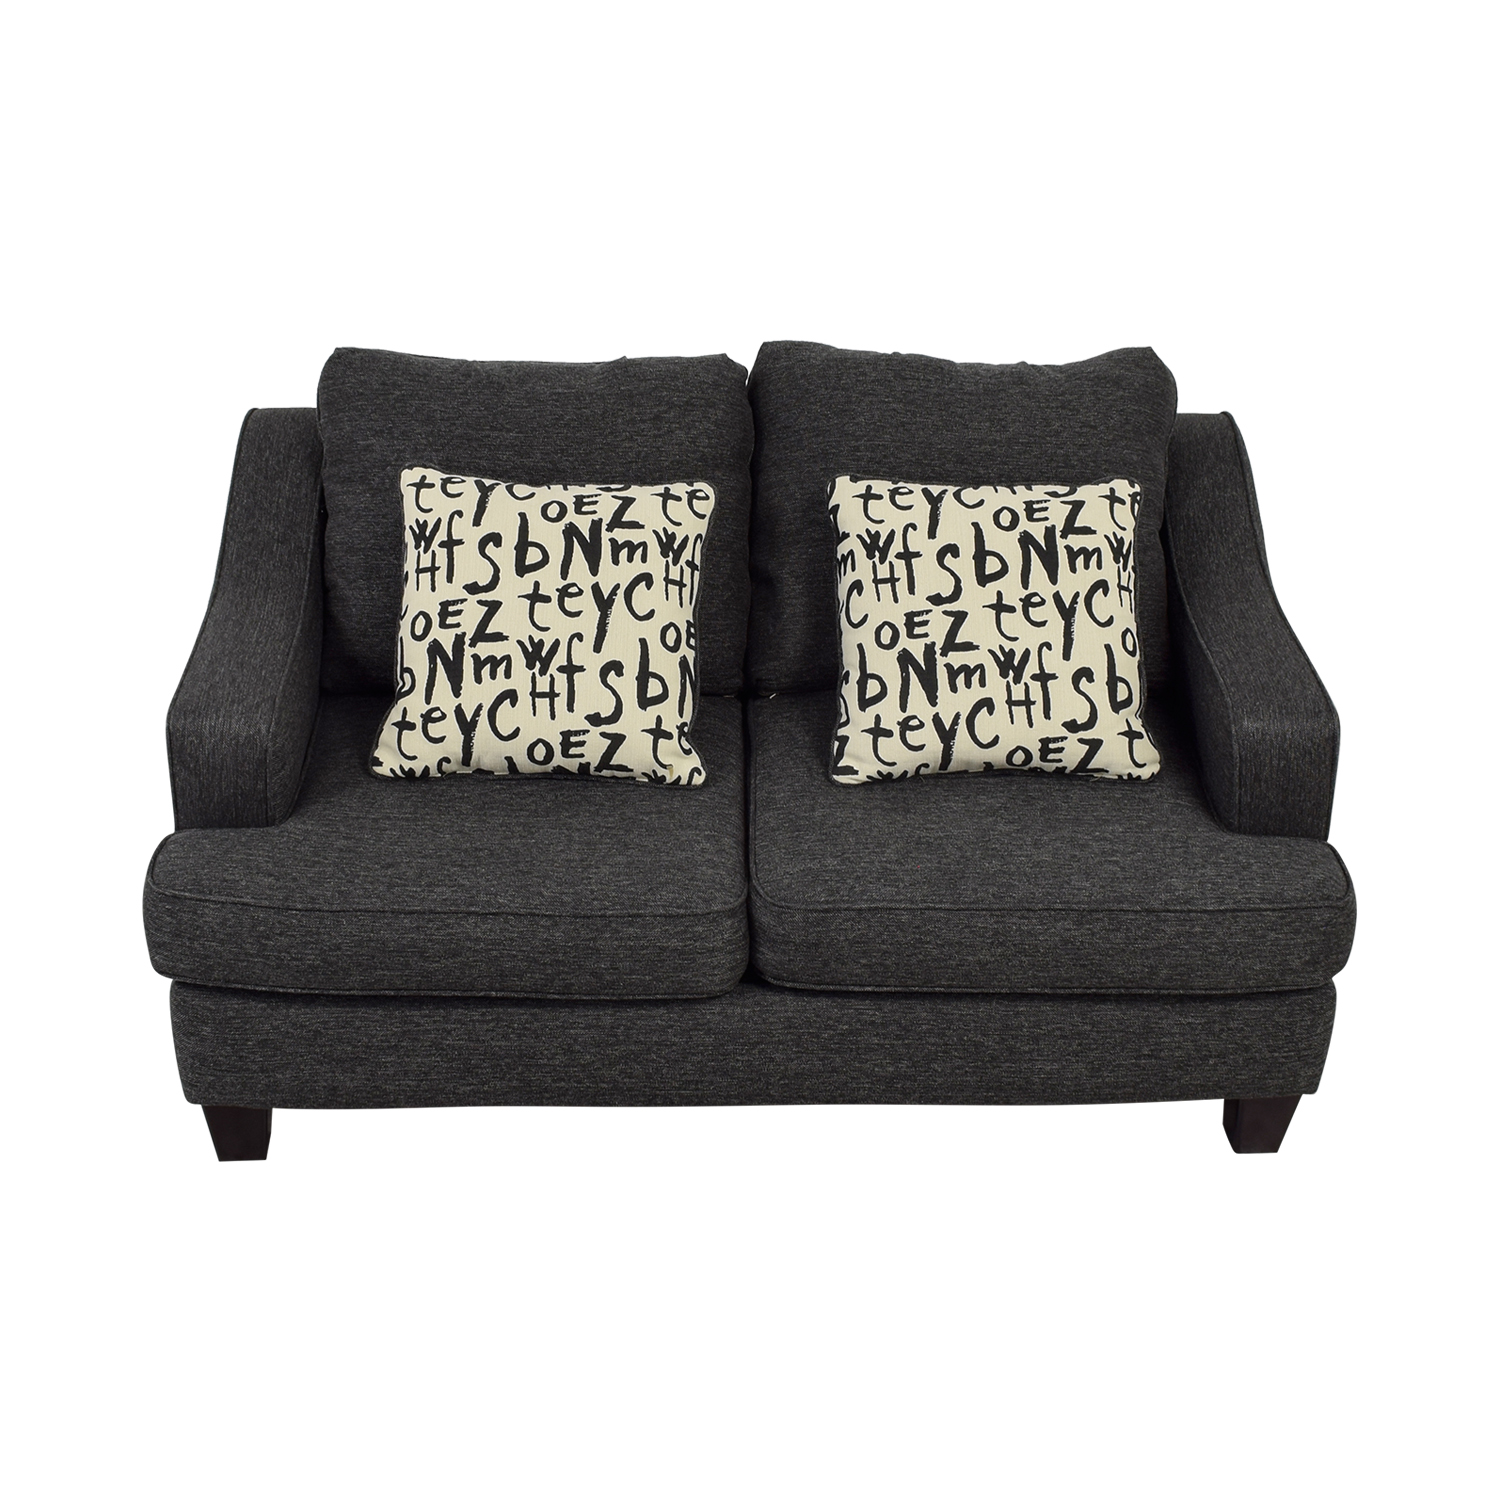 Raymour & Flanigan Raymour & Flanigan Union Square Charcoal Loveseat for sale